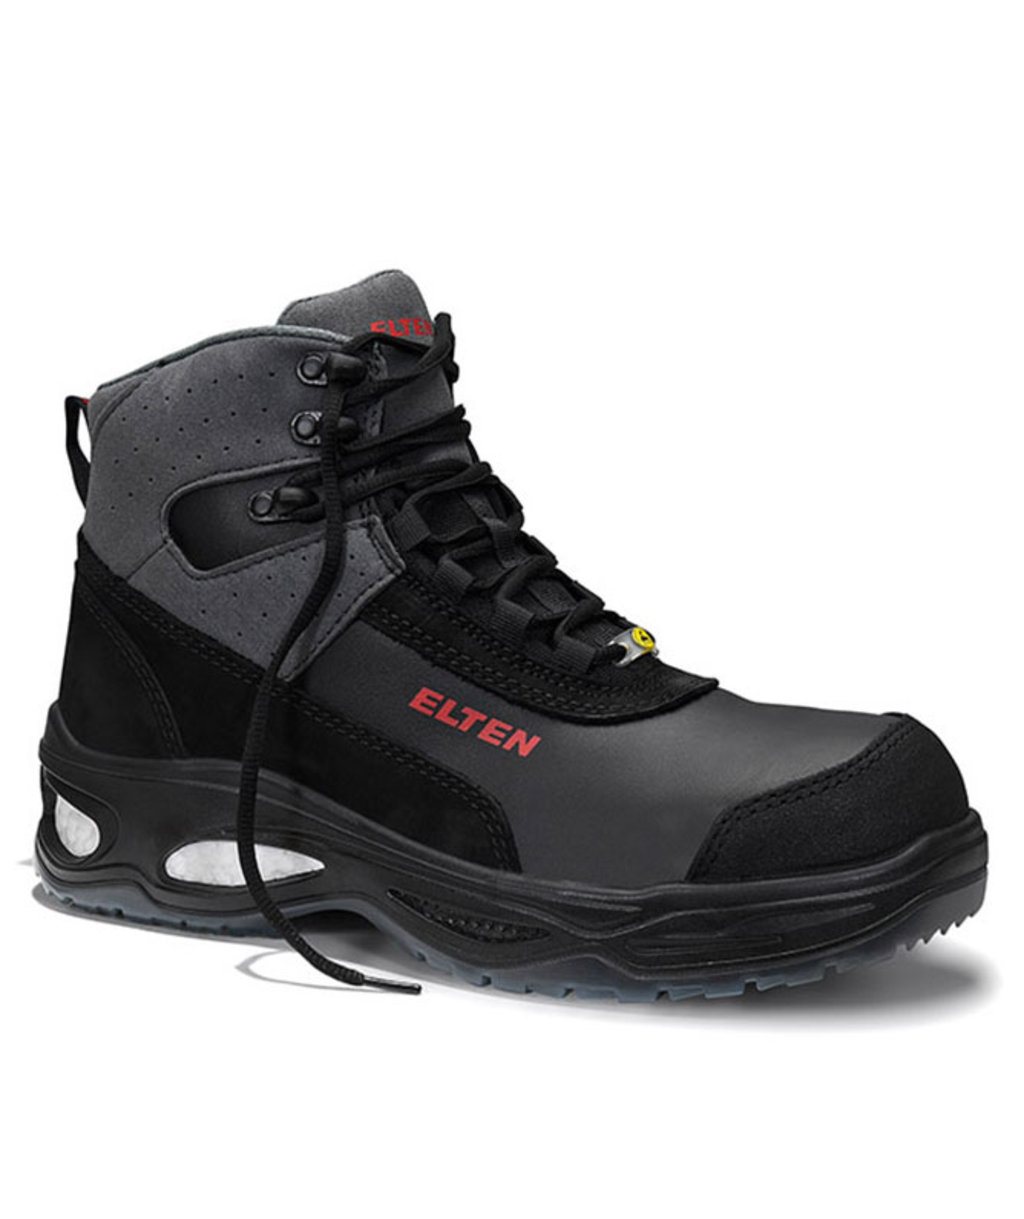 Elten Miles Mid safety bootees S3, Black